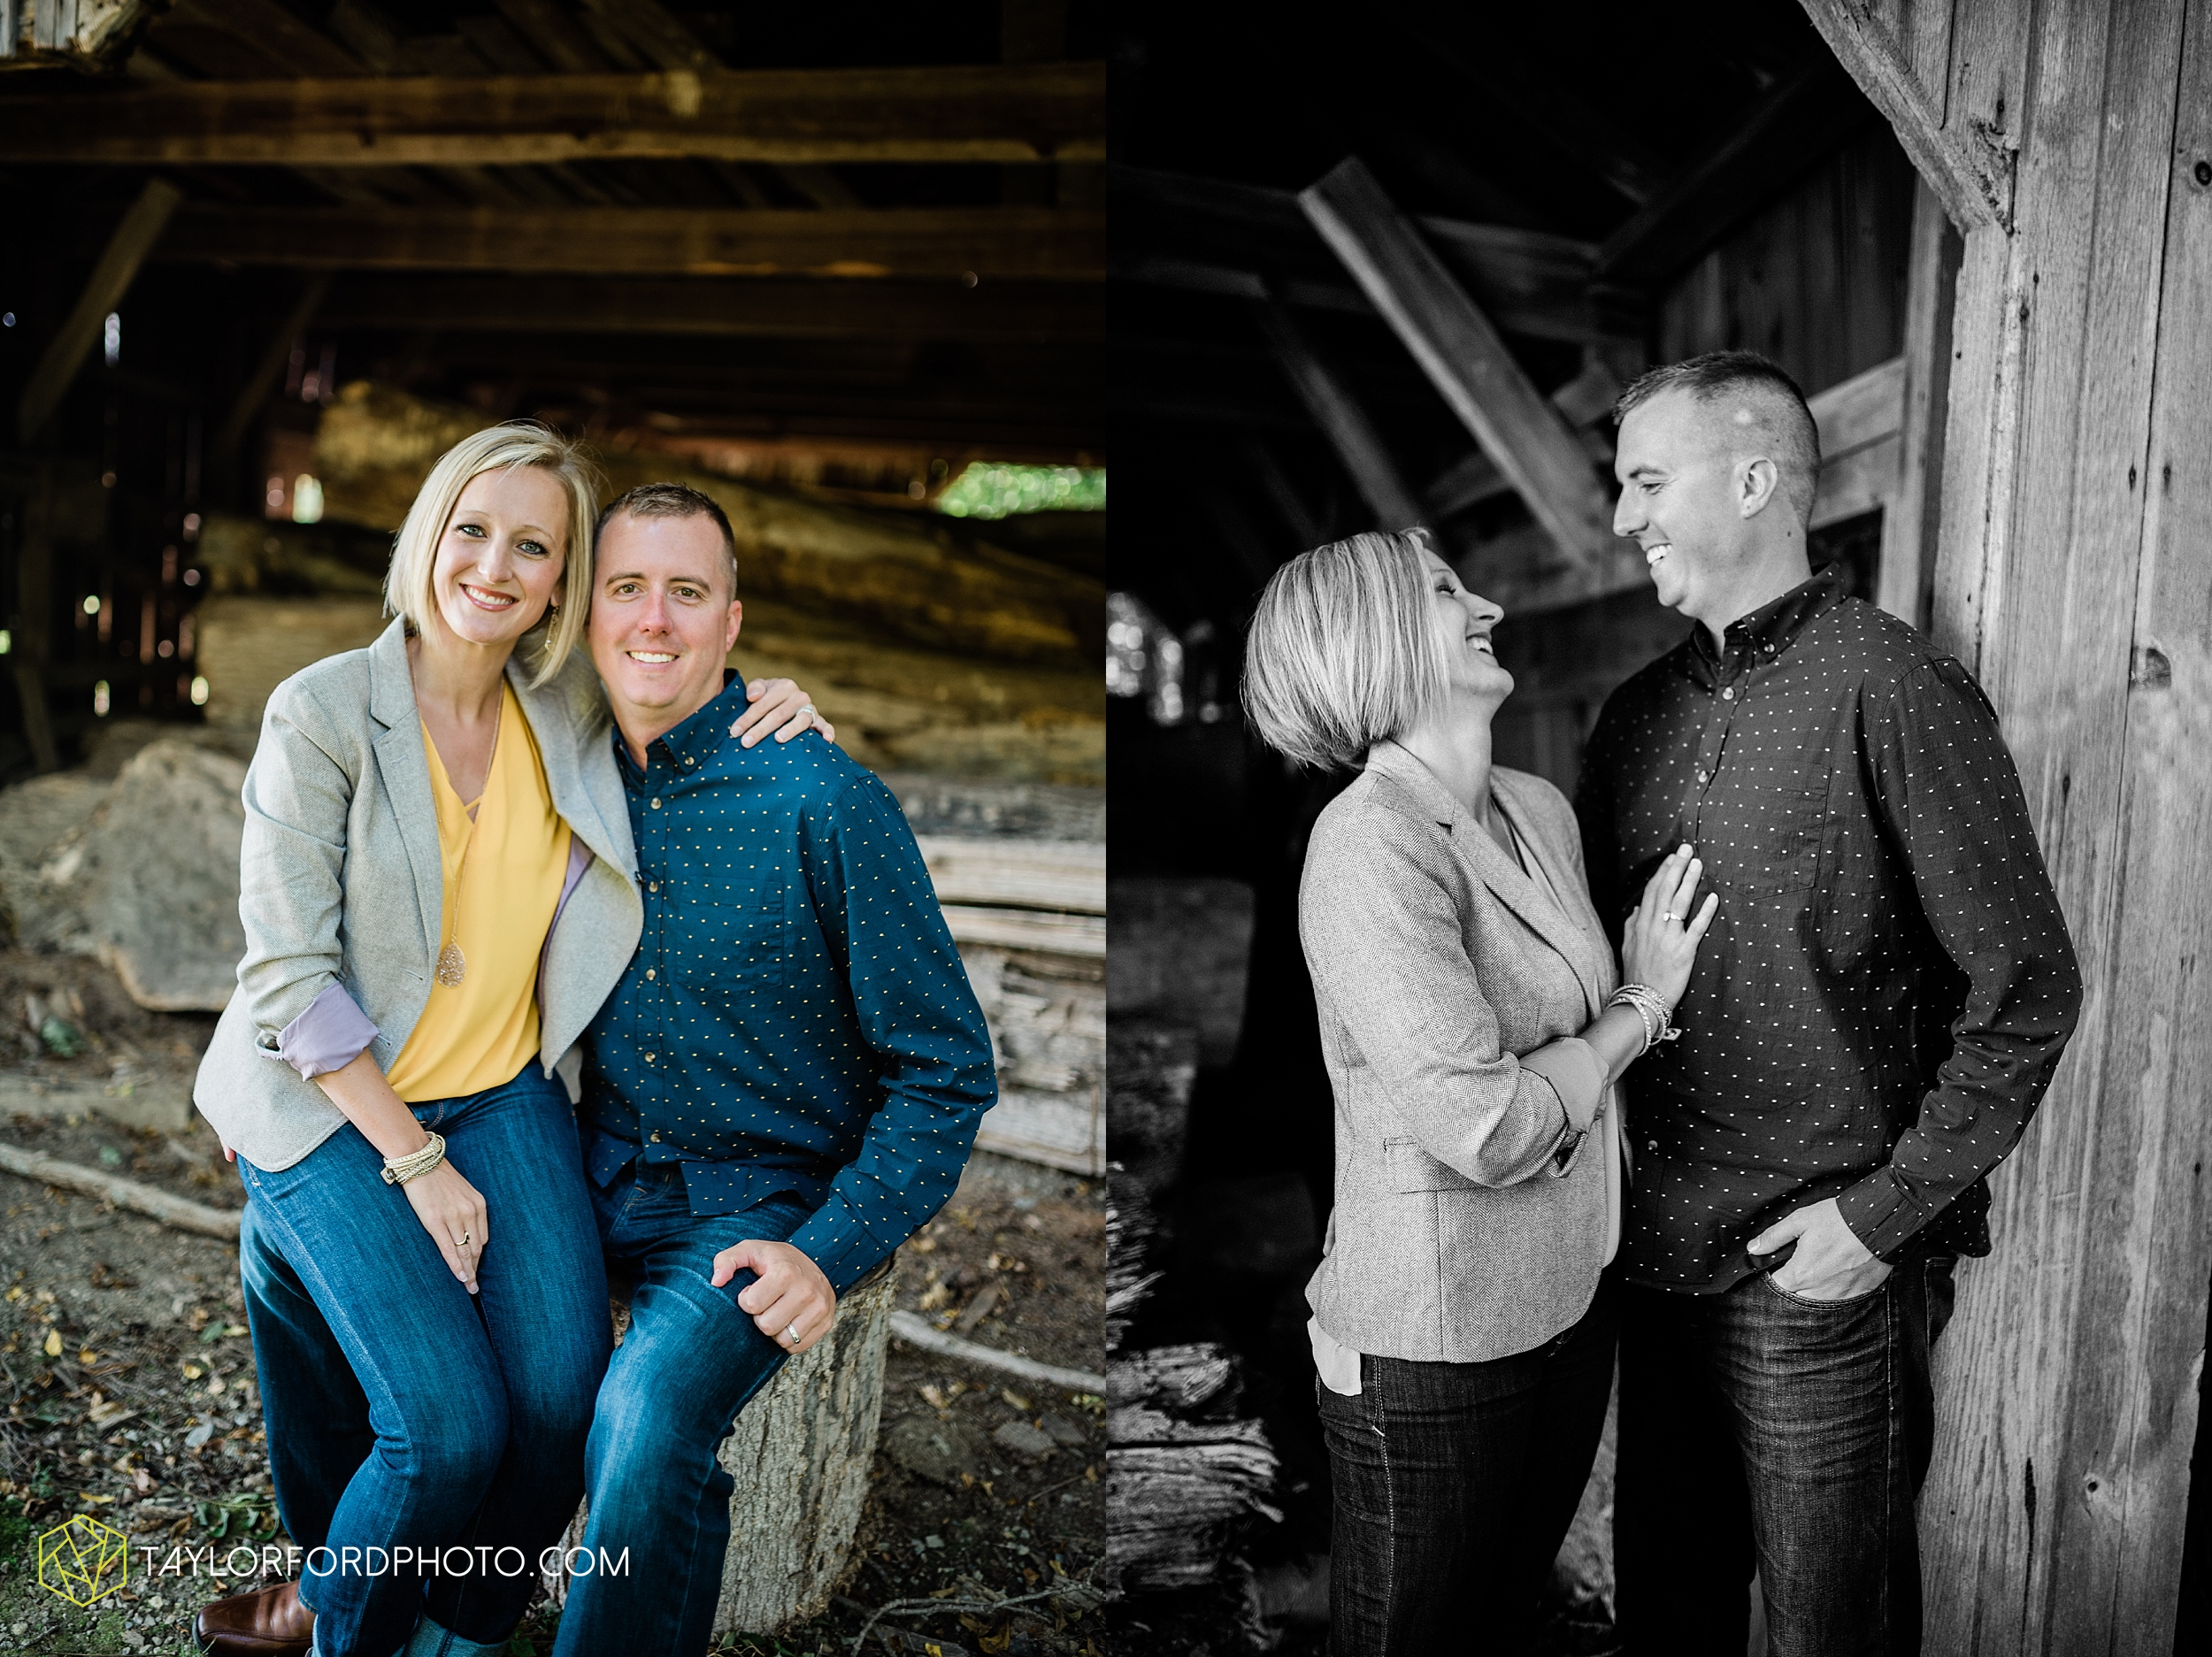 delphos-fort-jennings-ohio-at-home-lifestyle-farm-extended-family-photographer-taylor-ford-photography_0731.jpg